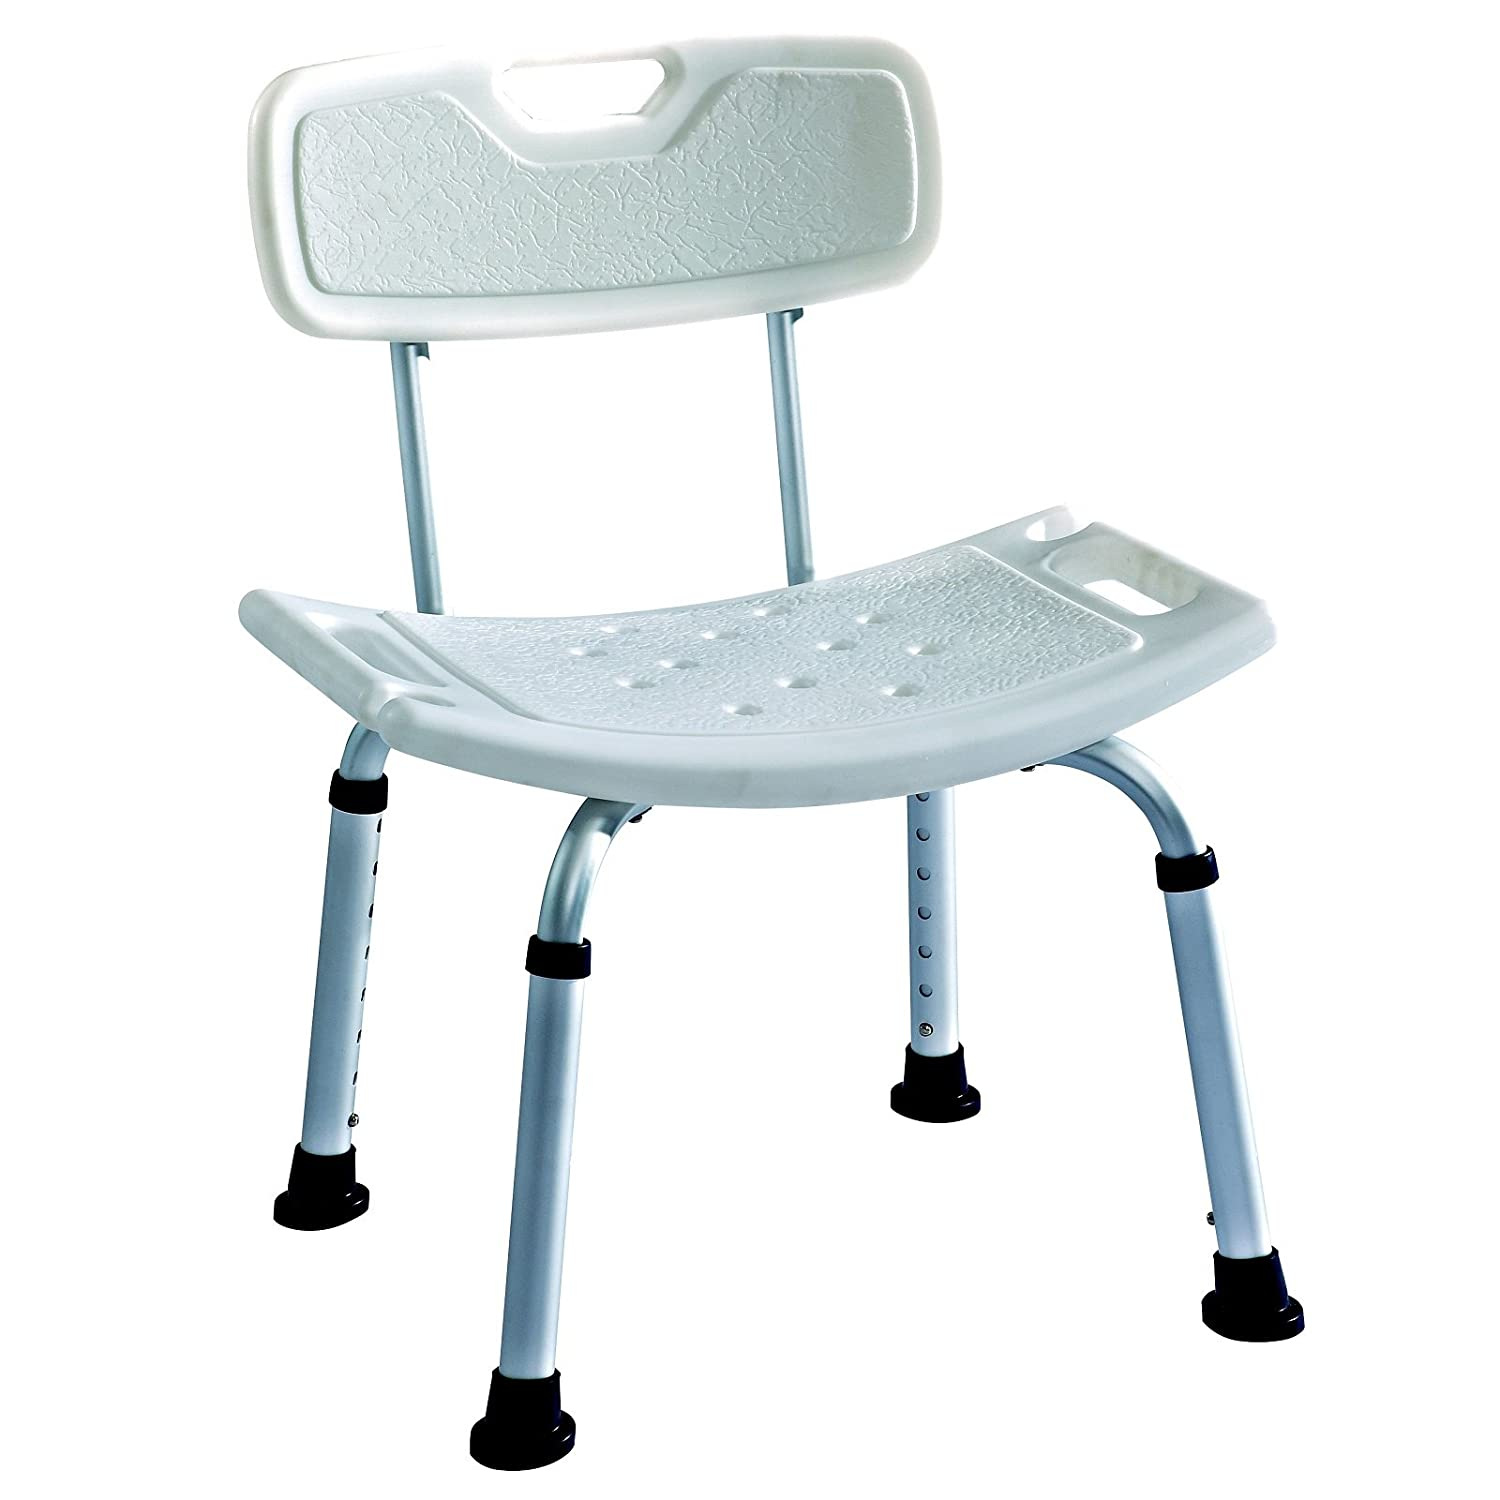 Top 10 Best Shower Chairs for the Elderly 2016-2017